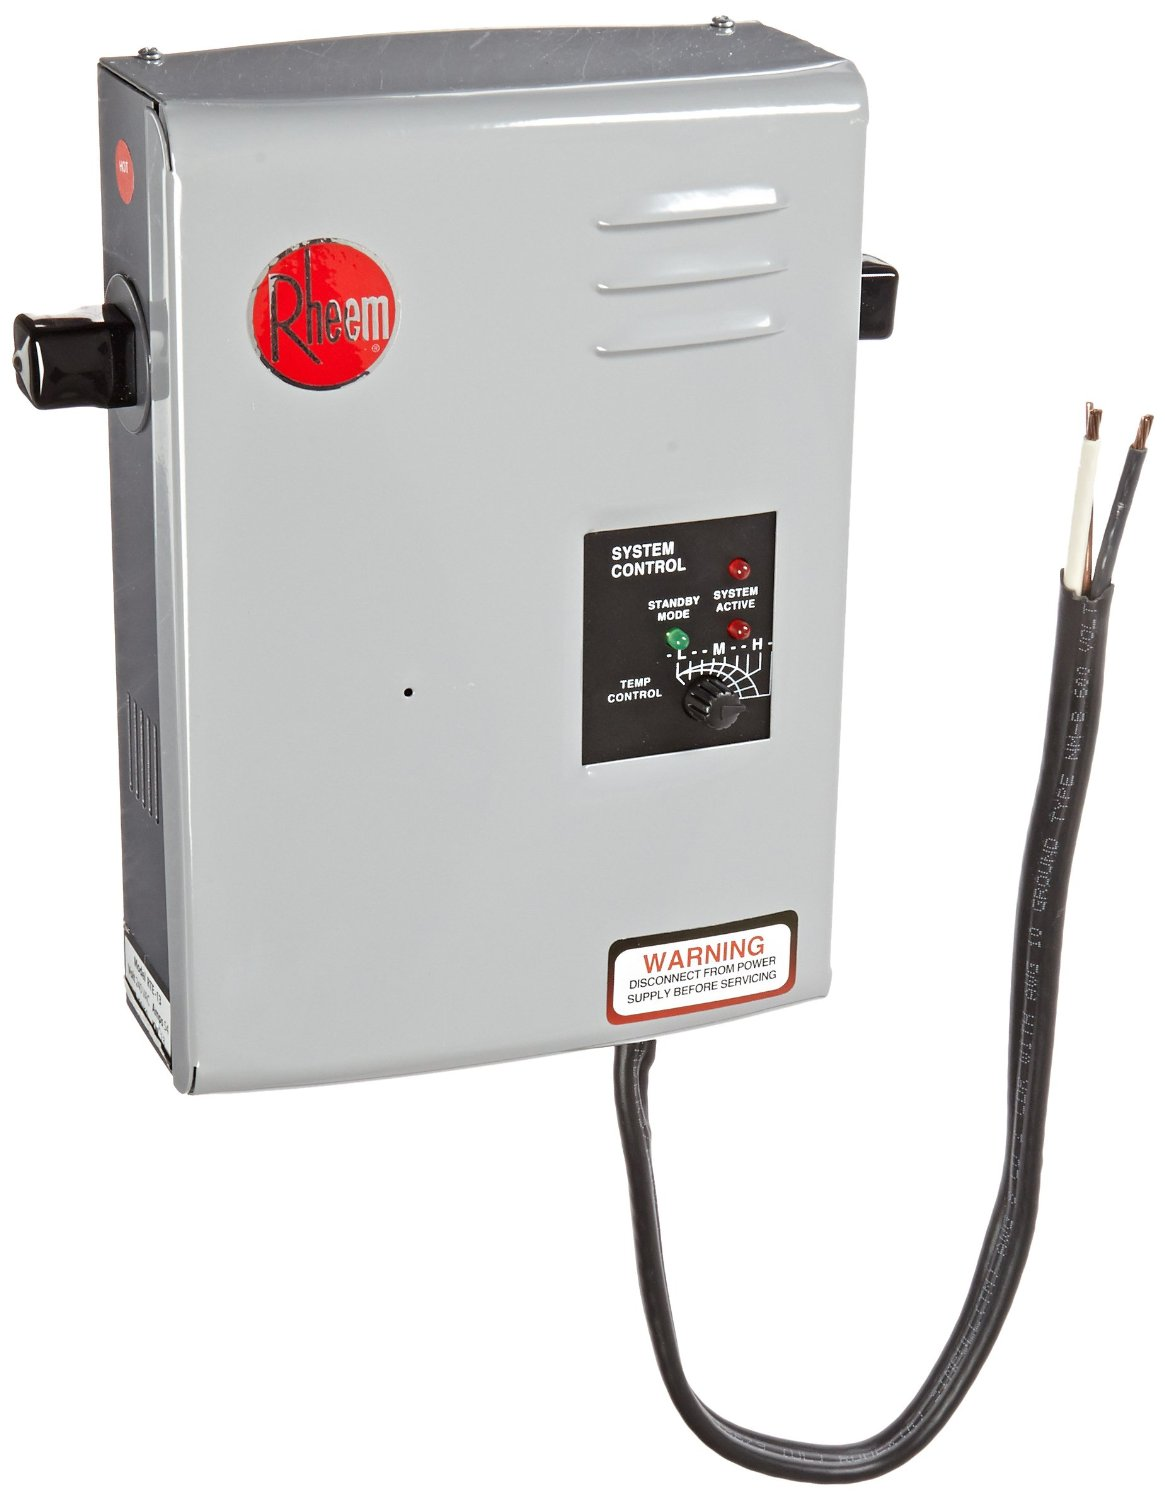 Charming Rheem RTE 13 Electric Tankless Water Heater